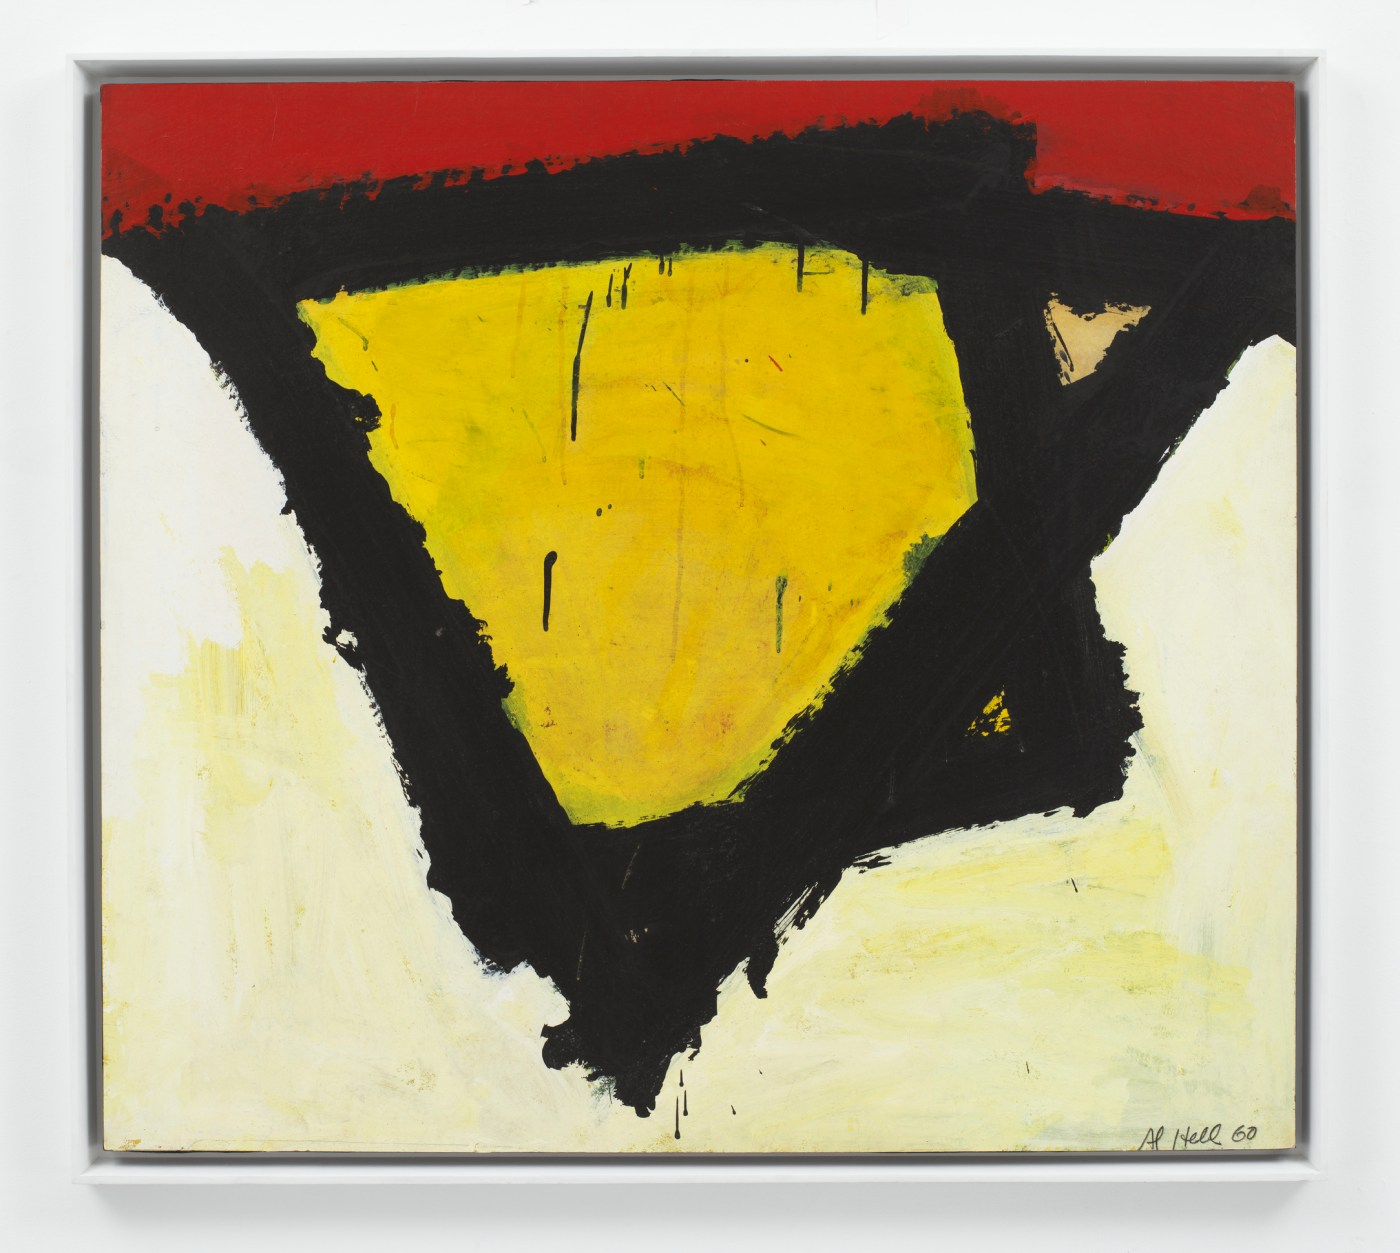 """AI Held Untitled """"N"""" 1960  Acrylic on paper mounted on canvas  35 x 37 3/4 in. (88.9 x 95.9 cm)  35 3/8 x 39 7/16 x 1 9/16 in. (89.9 x 100.1 x 3.9 cm) (framed)  @ the artist. Photo @ Christopher Burke, New York Courtesy White Cube and AI Helf Foundation, Inc."""